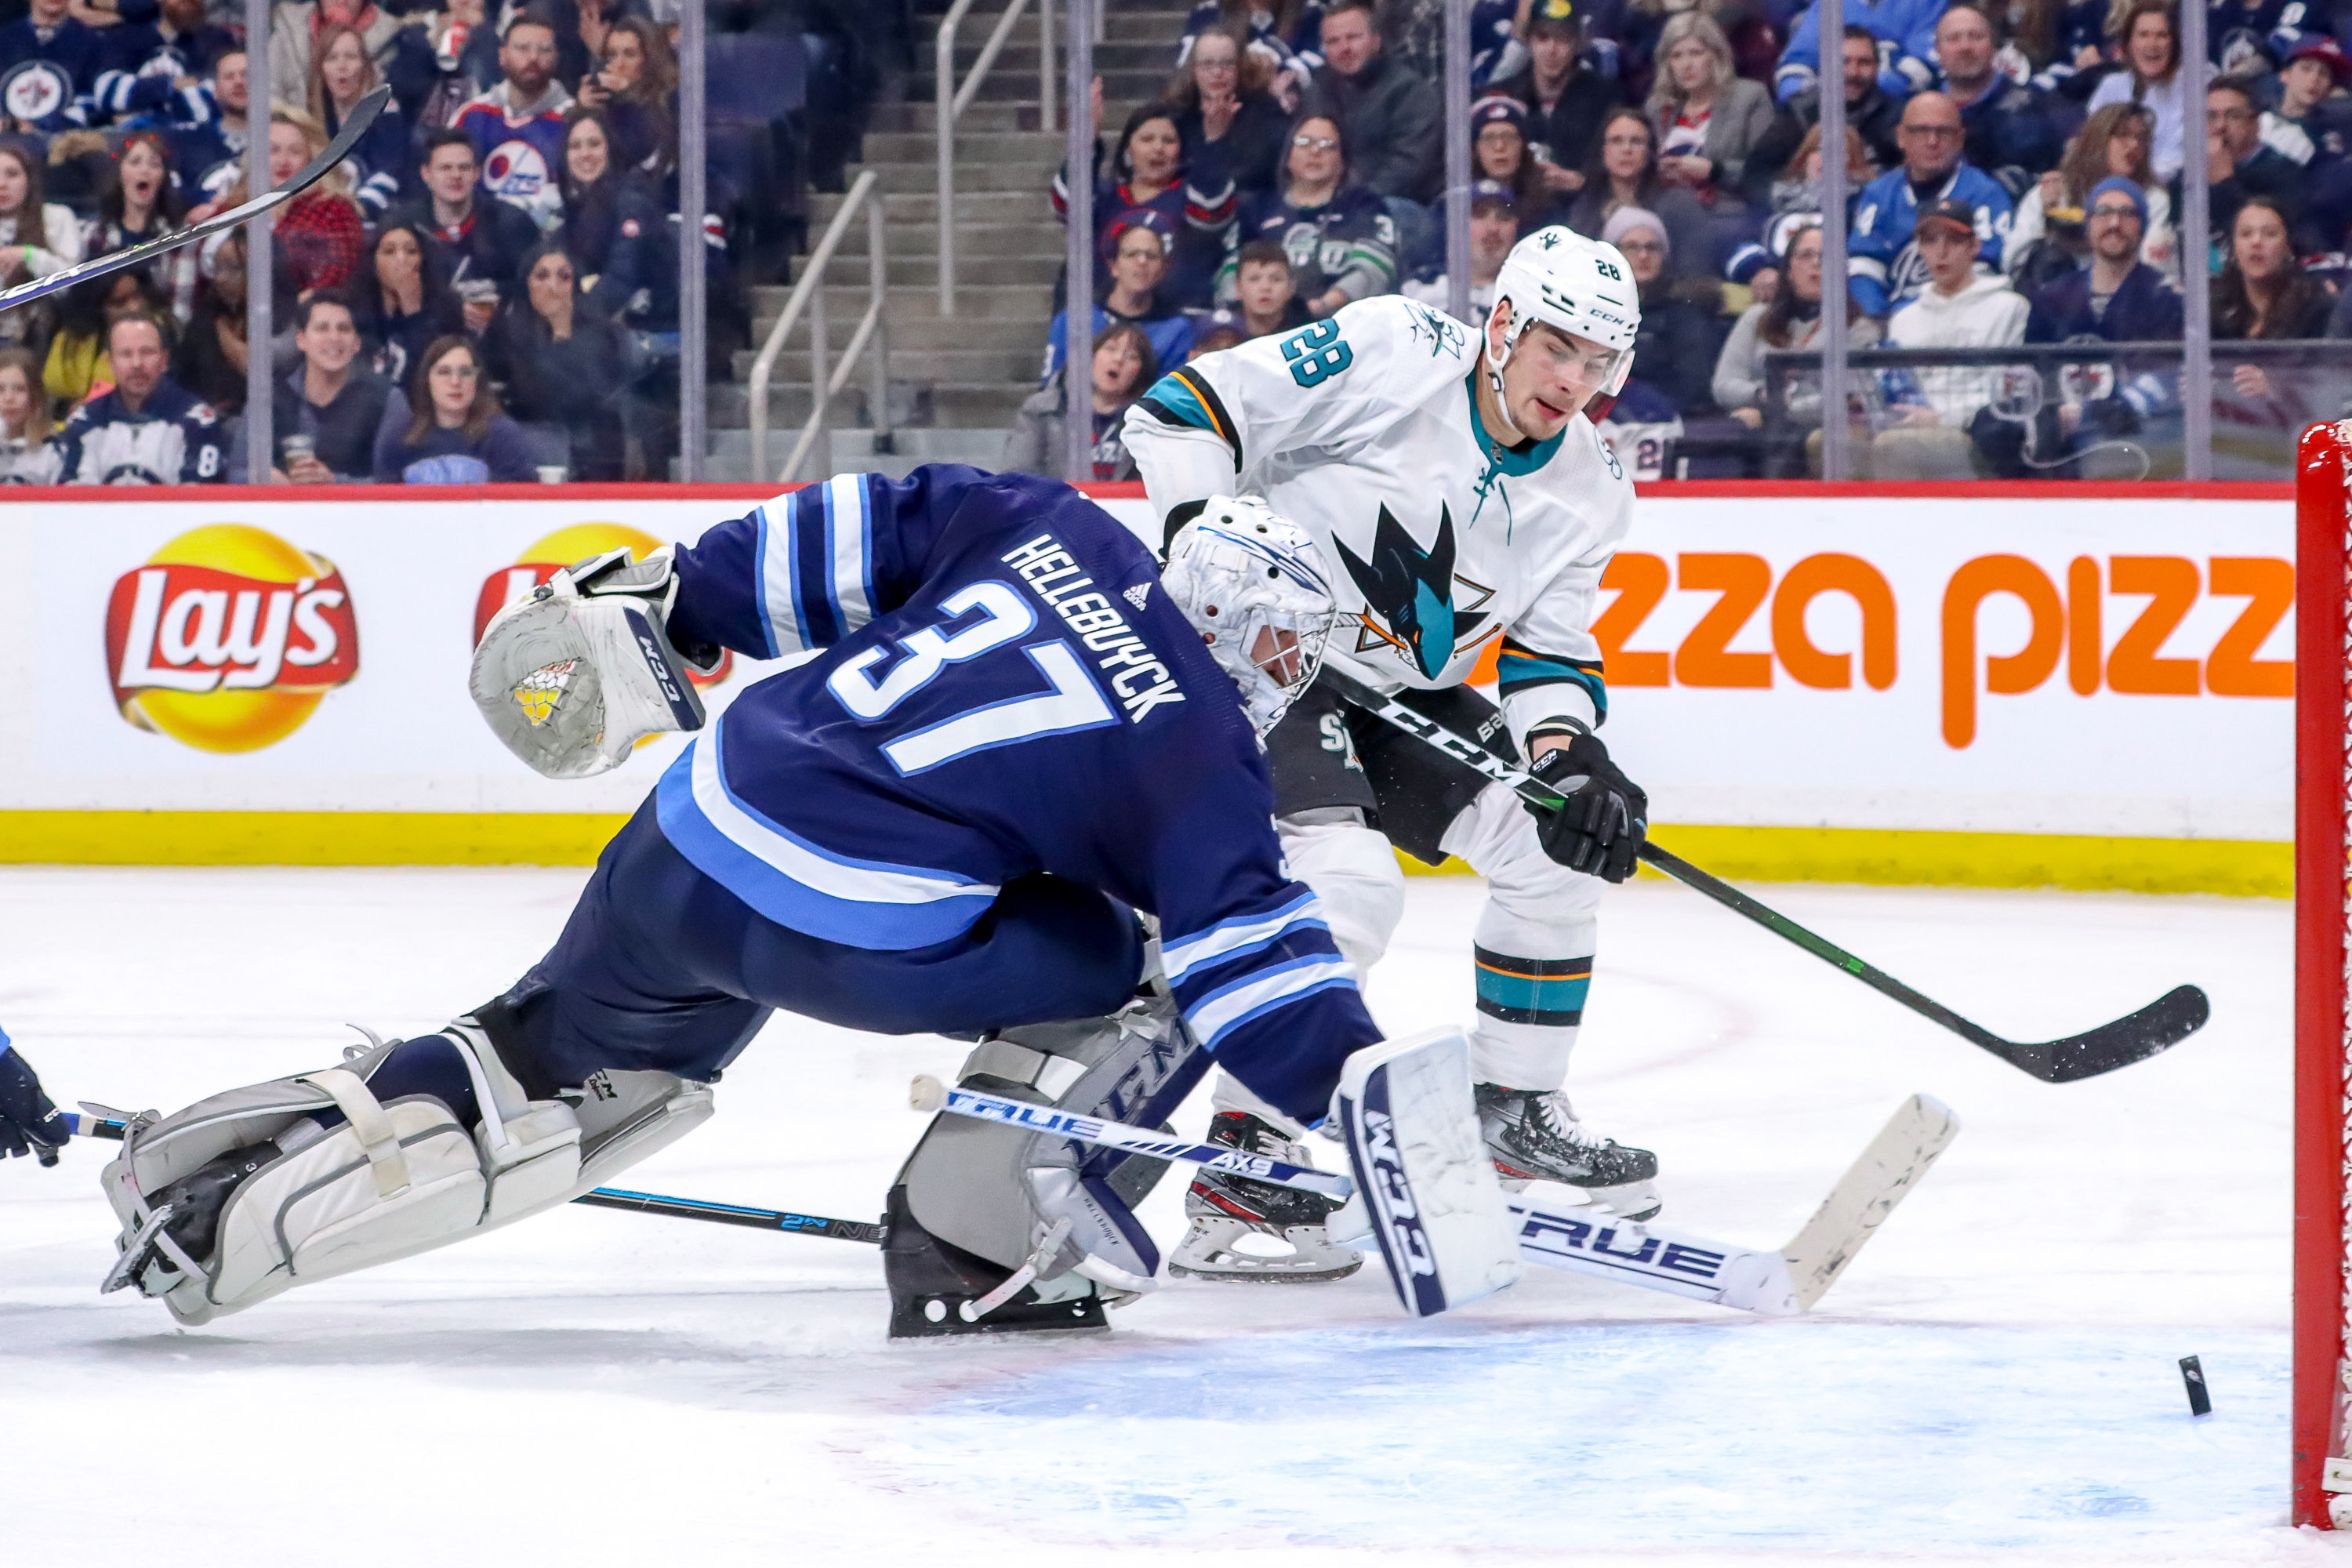 Timo Meier #28 of the San Jose Sharks shoots the puck past goaltender Connor Hellebuyck #37 of the Winnipeg Jets for a third period goal at the Bell MTS Place on February 14, 2020 in Winnipeg, Manitoba, Canada.